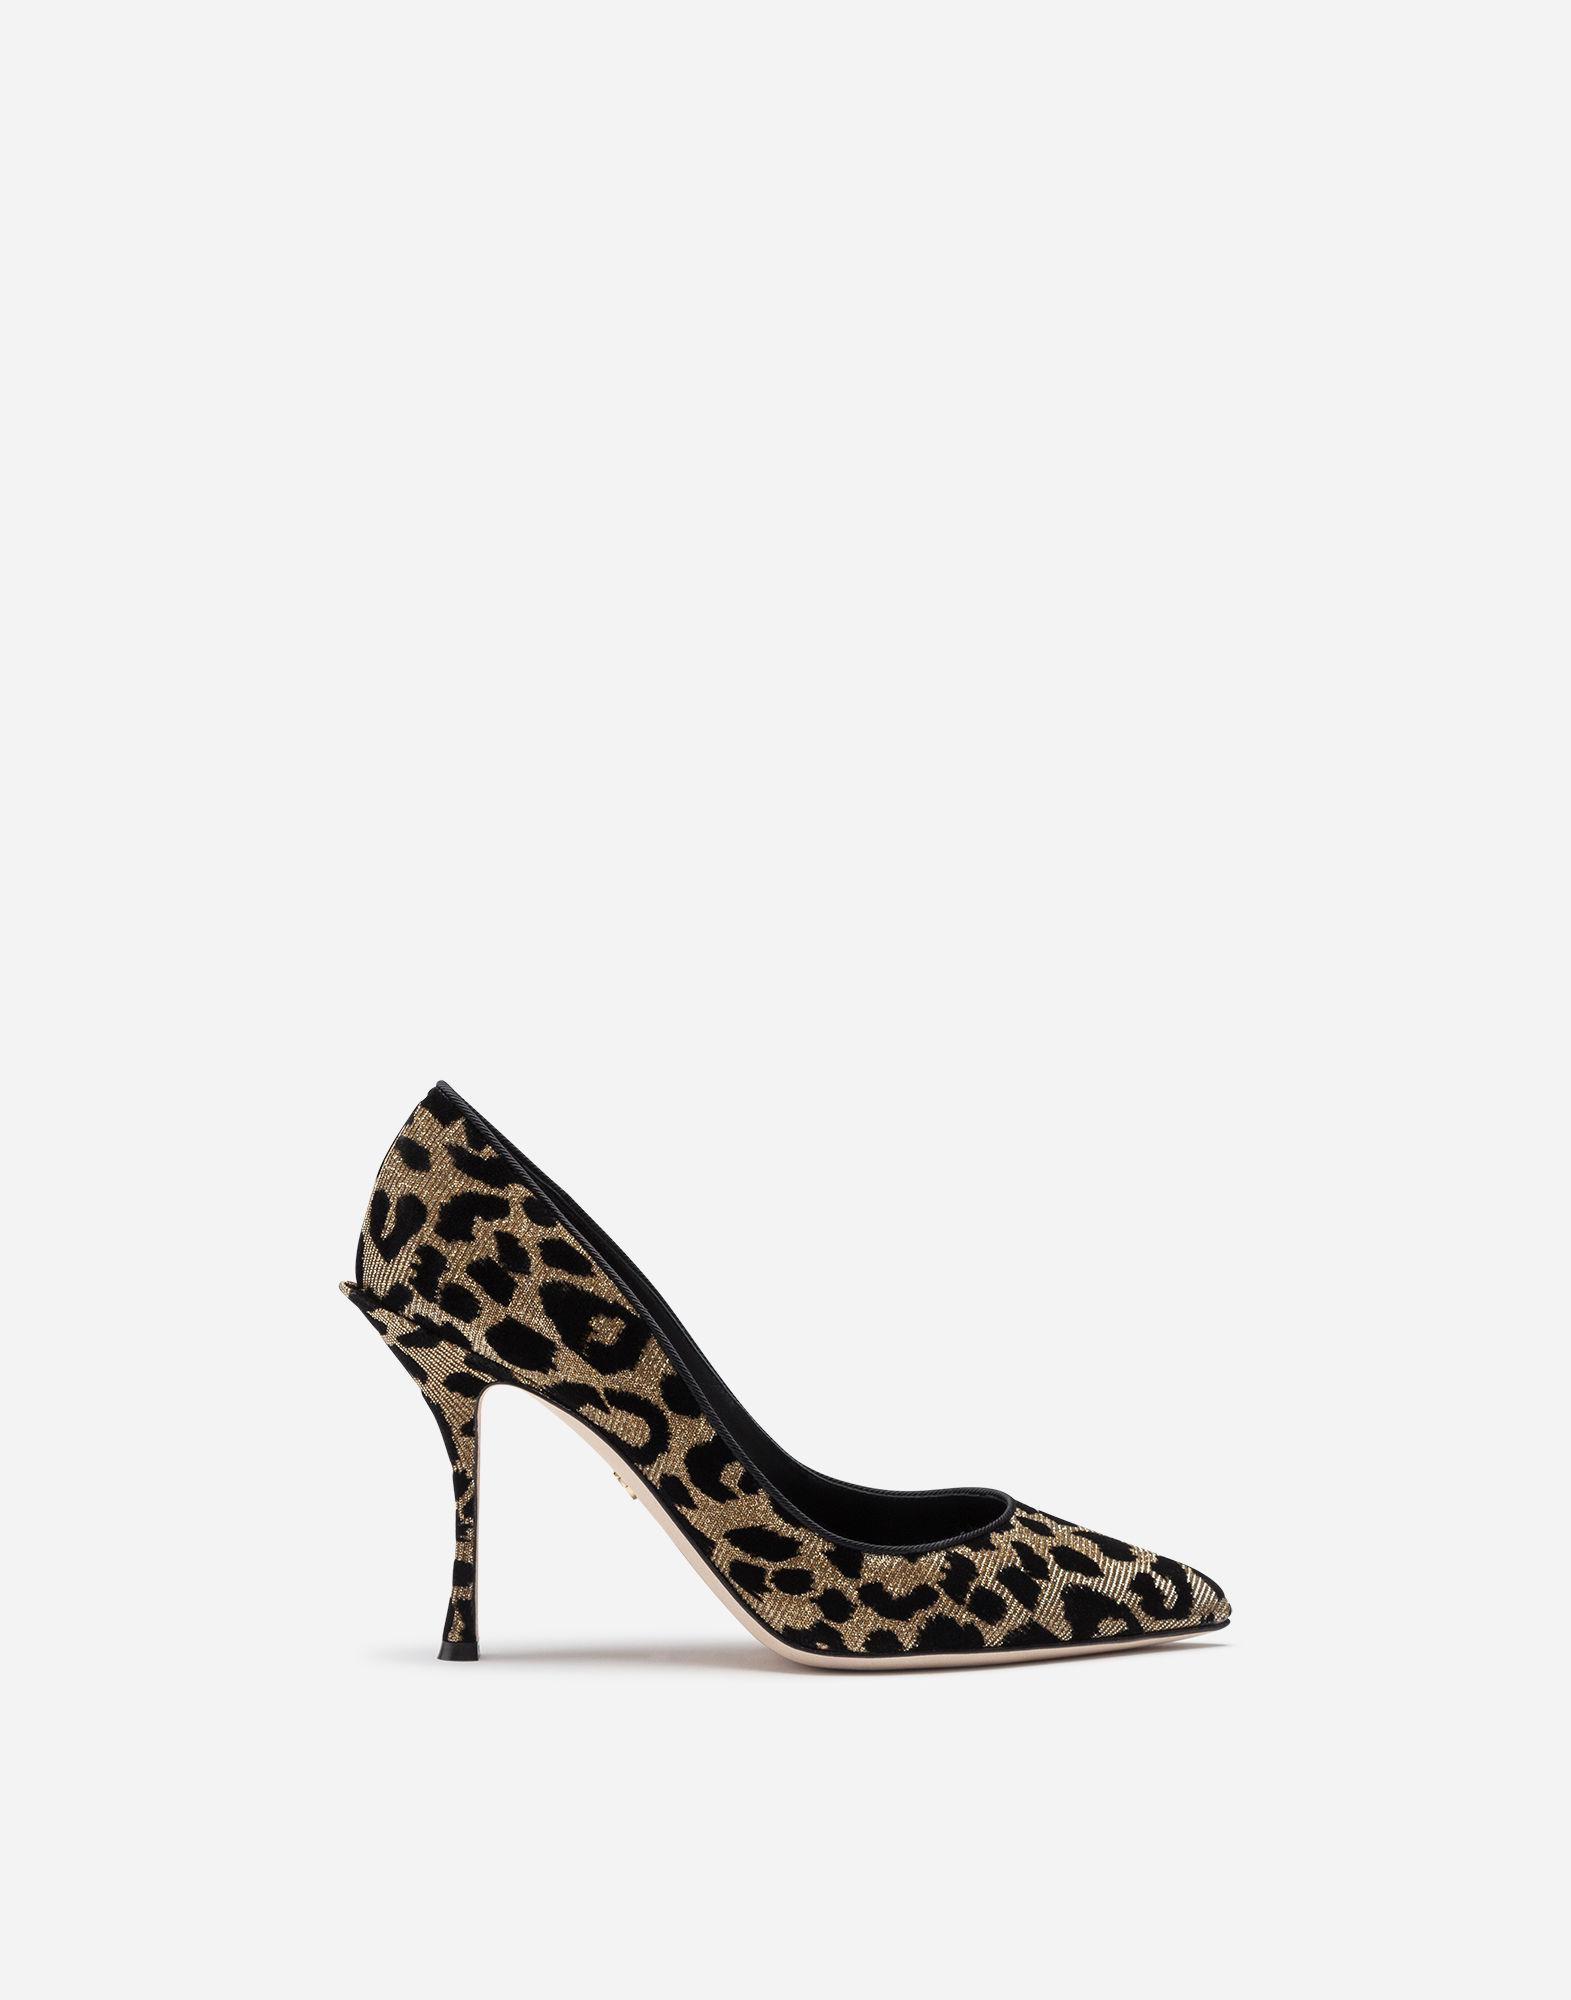 13f6886c255 Dolce   Gabbana. Women s Metallic Pumps In Color-changing Leopard Fabric